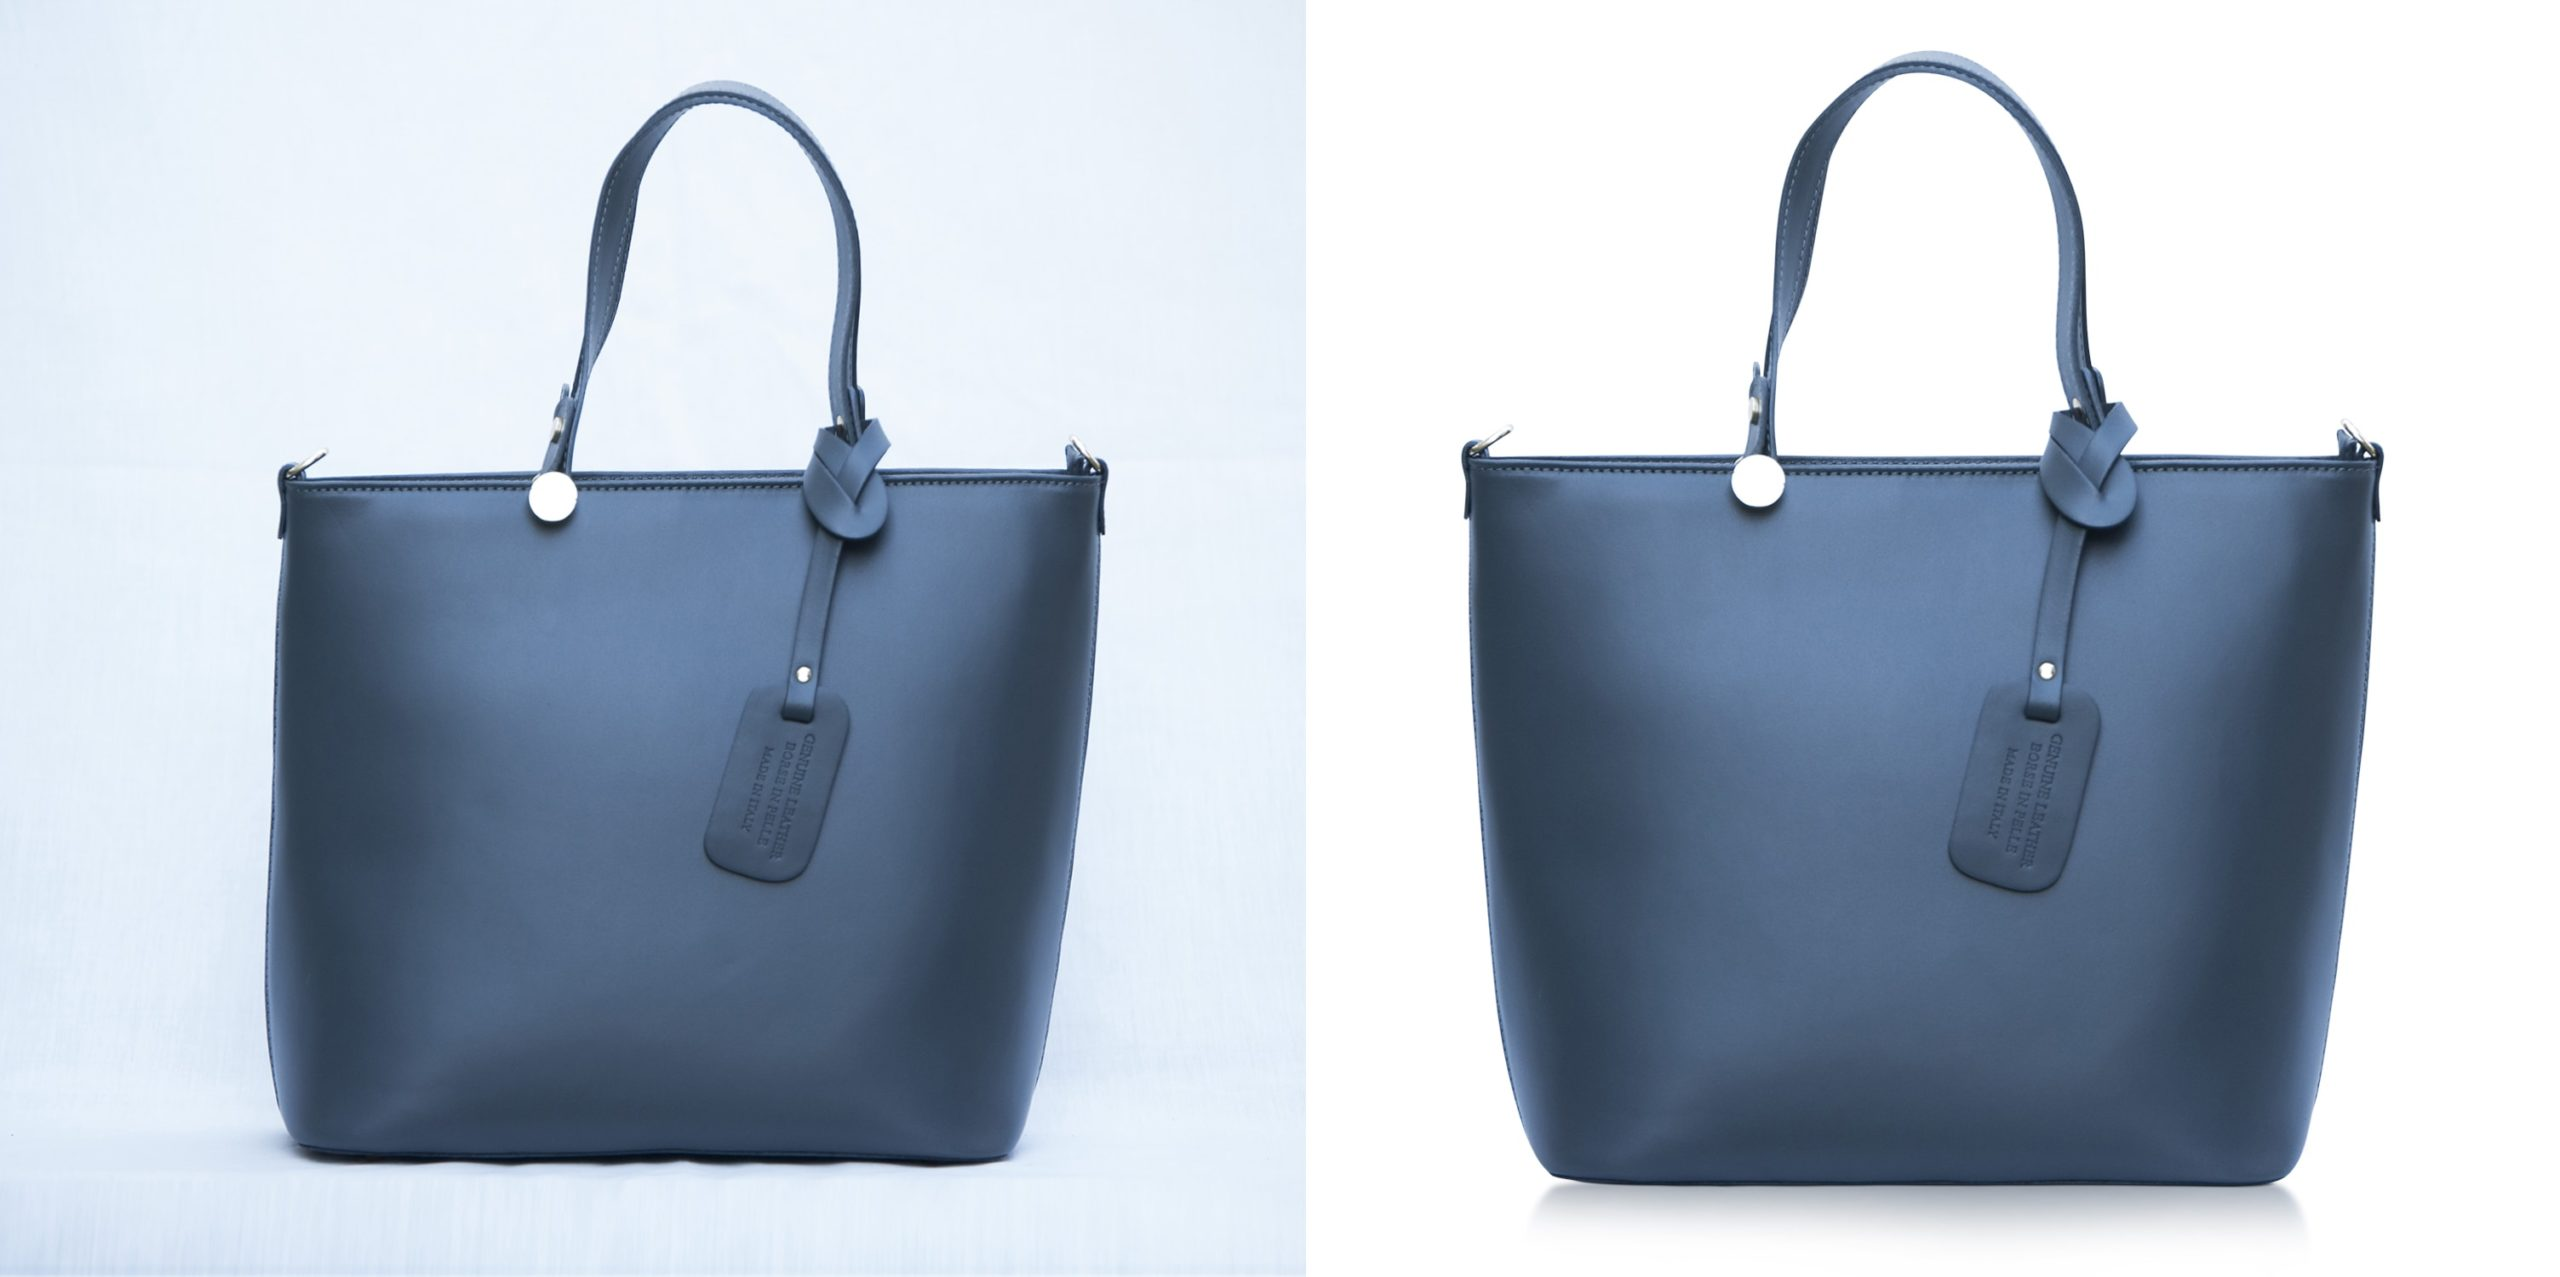 ecommerce commercial photography - products background removal